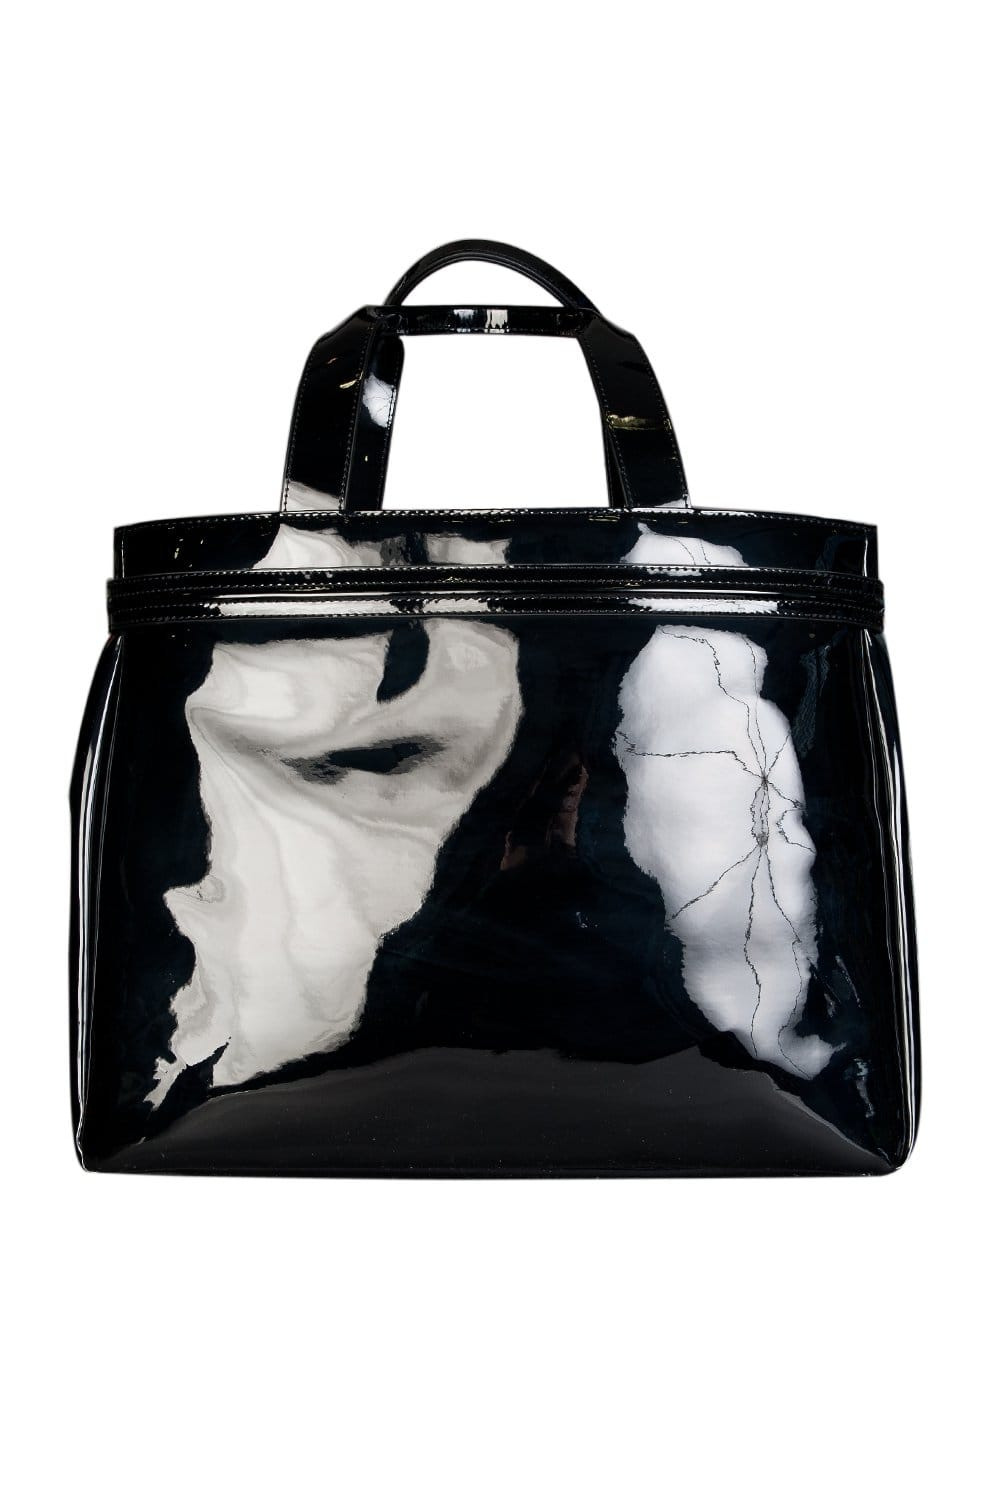 56511a9c0a5b Armani Jeans Ladies Patent Leather Look Shopping Bag in Black 0524655